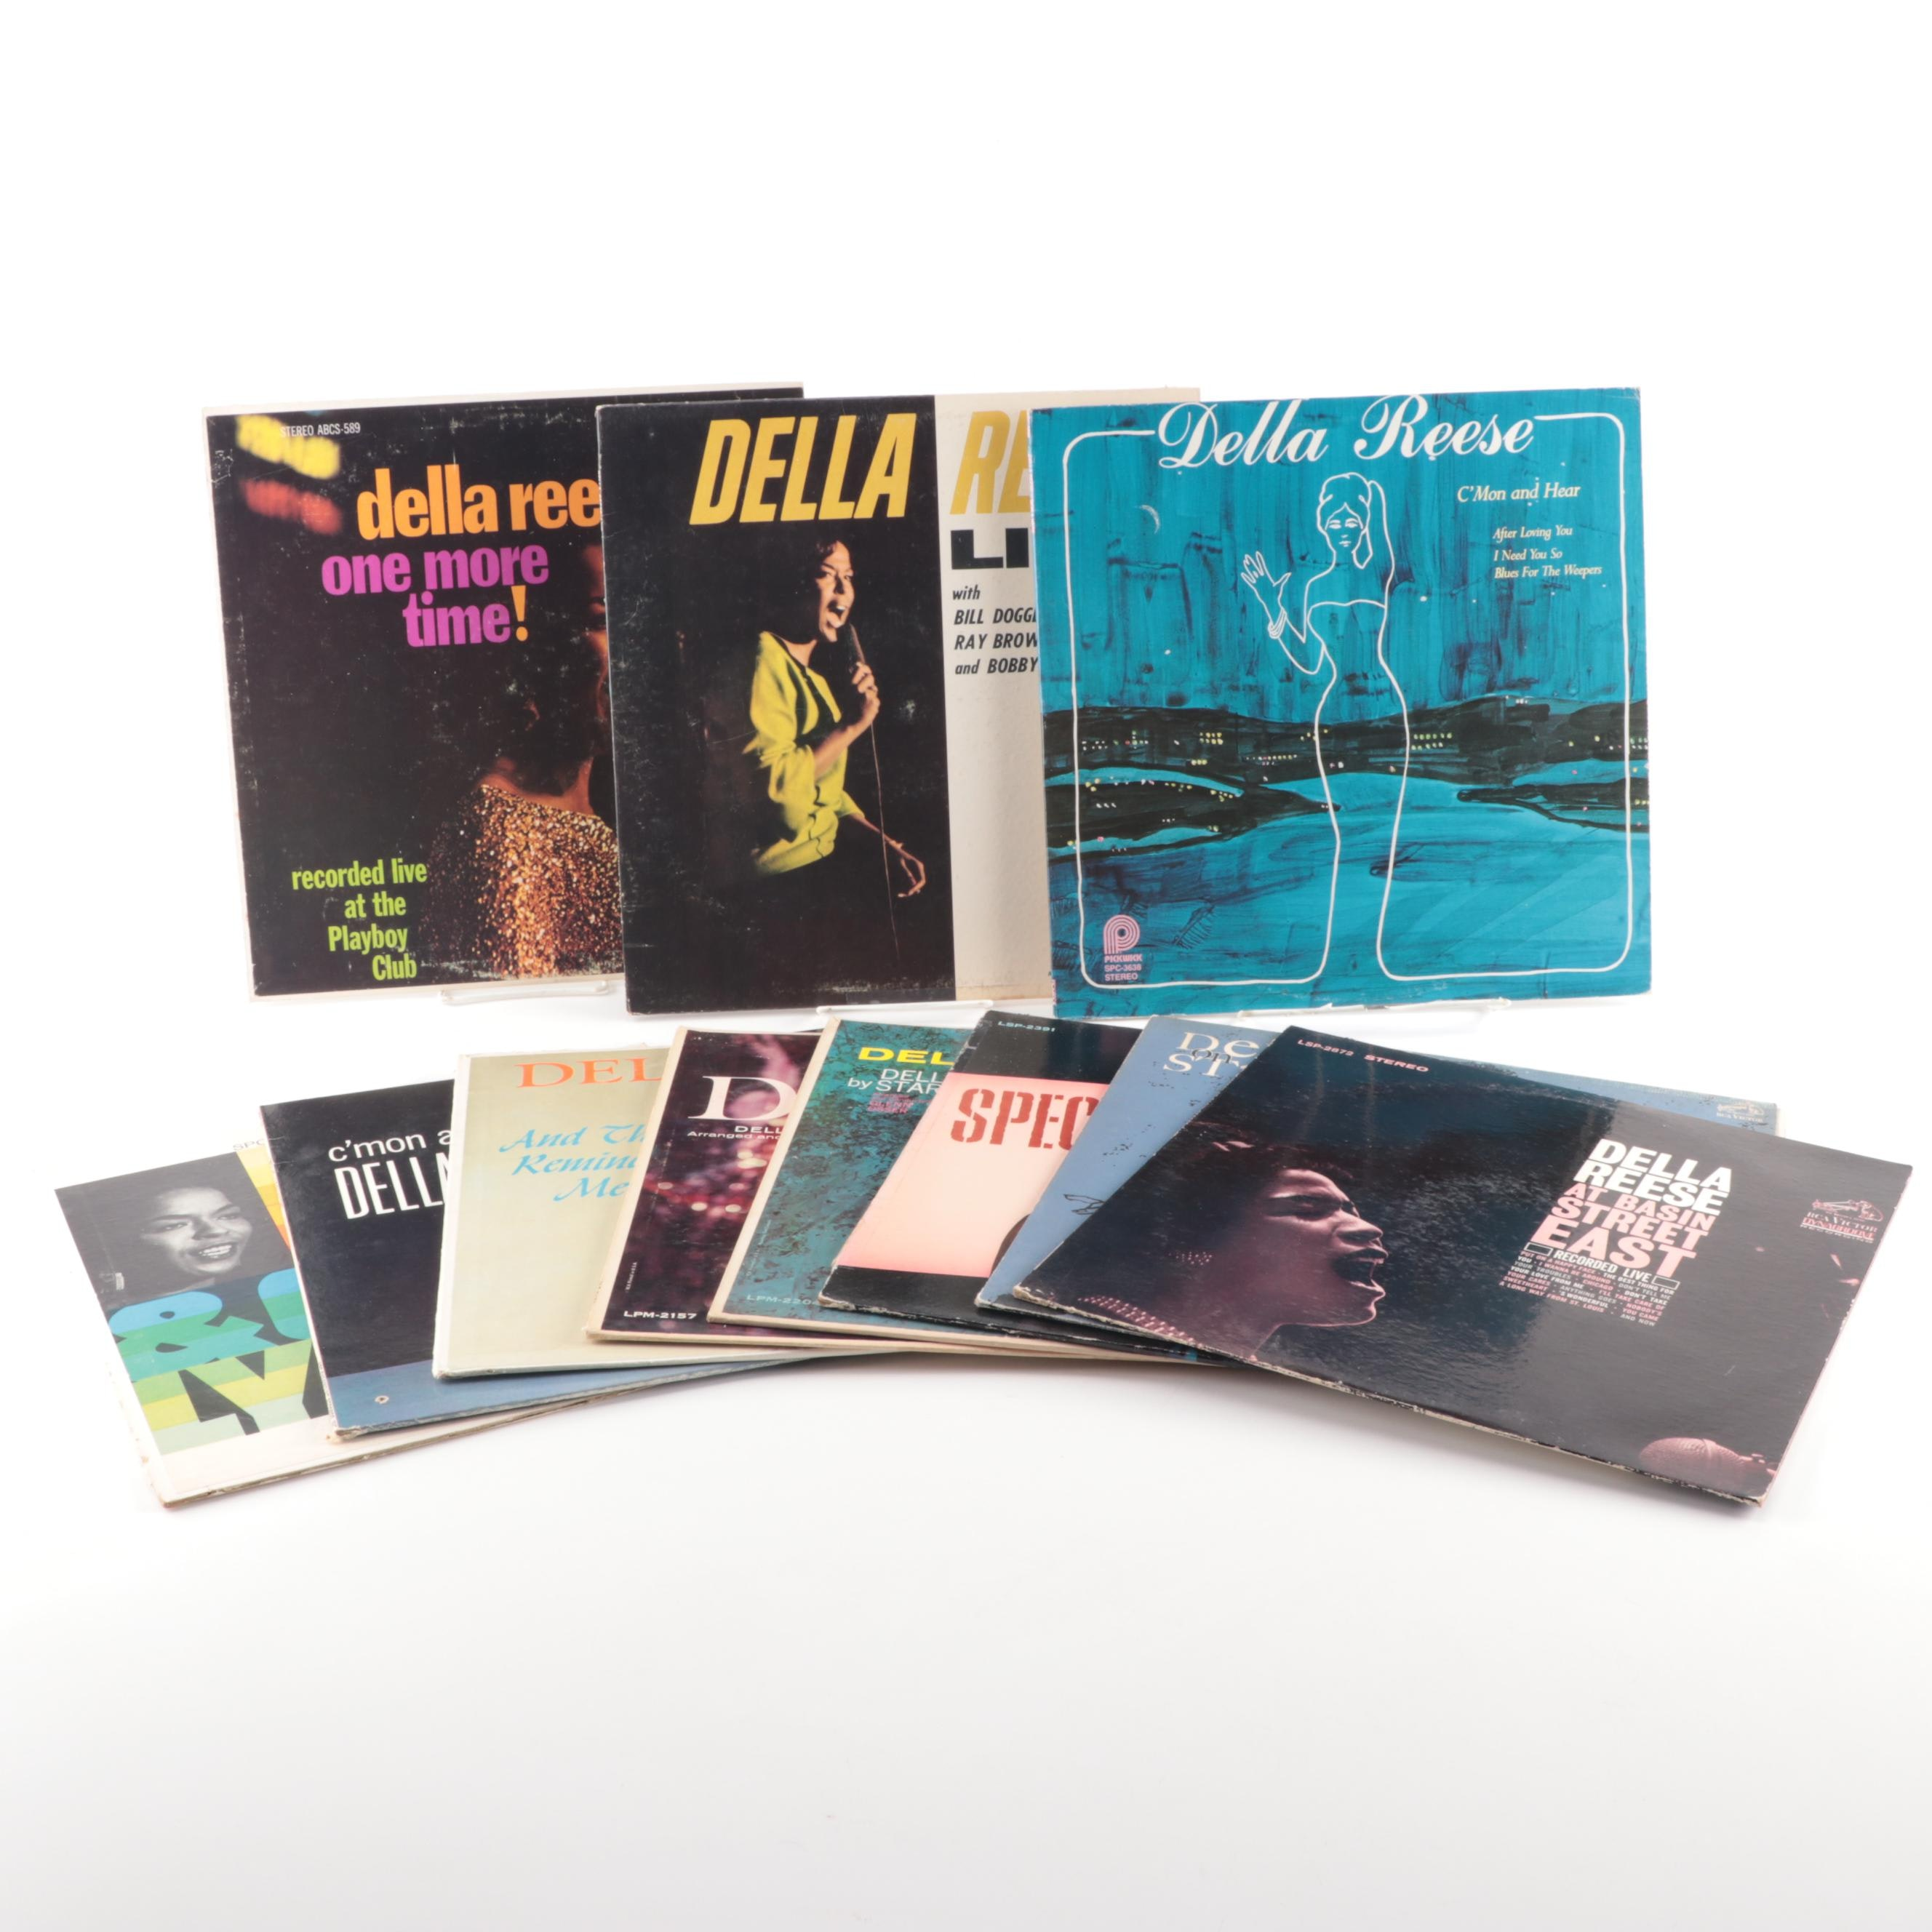 "Della Reese Vinyl Records including ""One More Time!"""